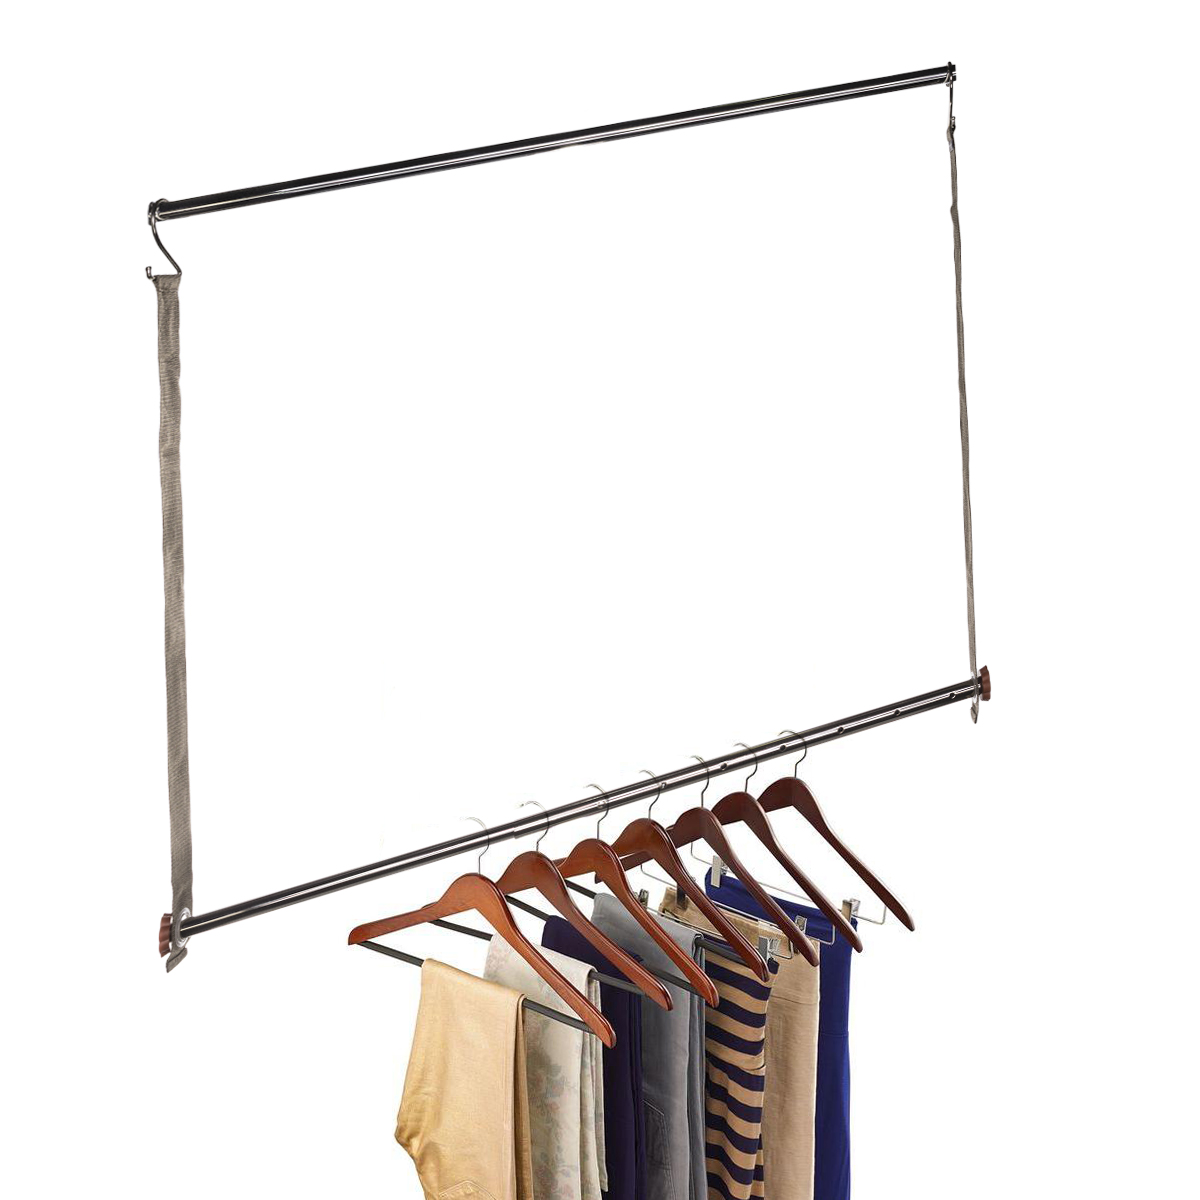 Neatfreak Michael Graves (3 Pack) Extendable Closet Hanging Bars Doubler  Rods Clothes Organizer   Walmart.com